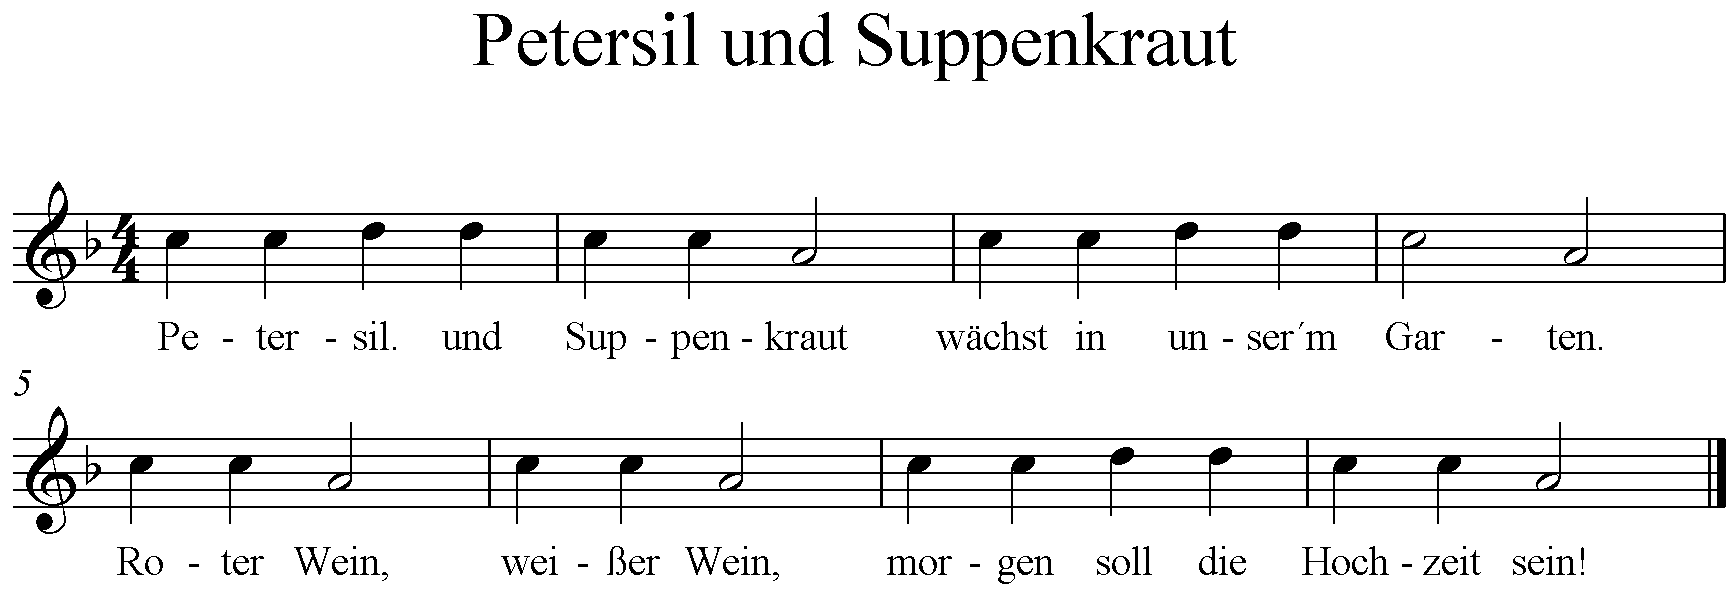 Noten Petersil und Suppenkraut